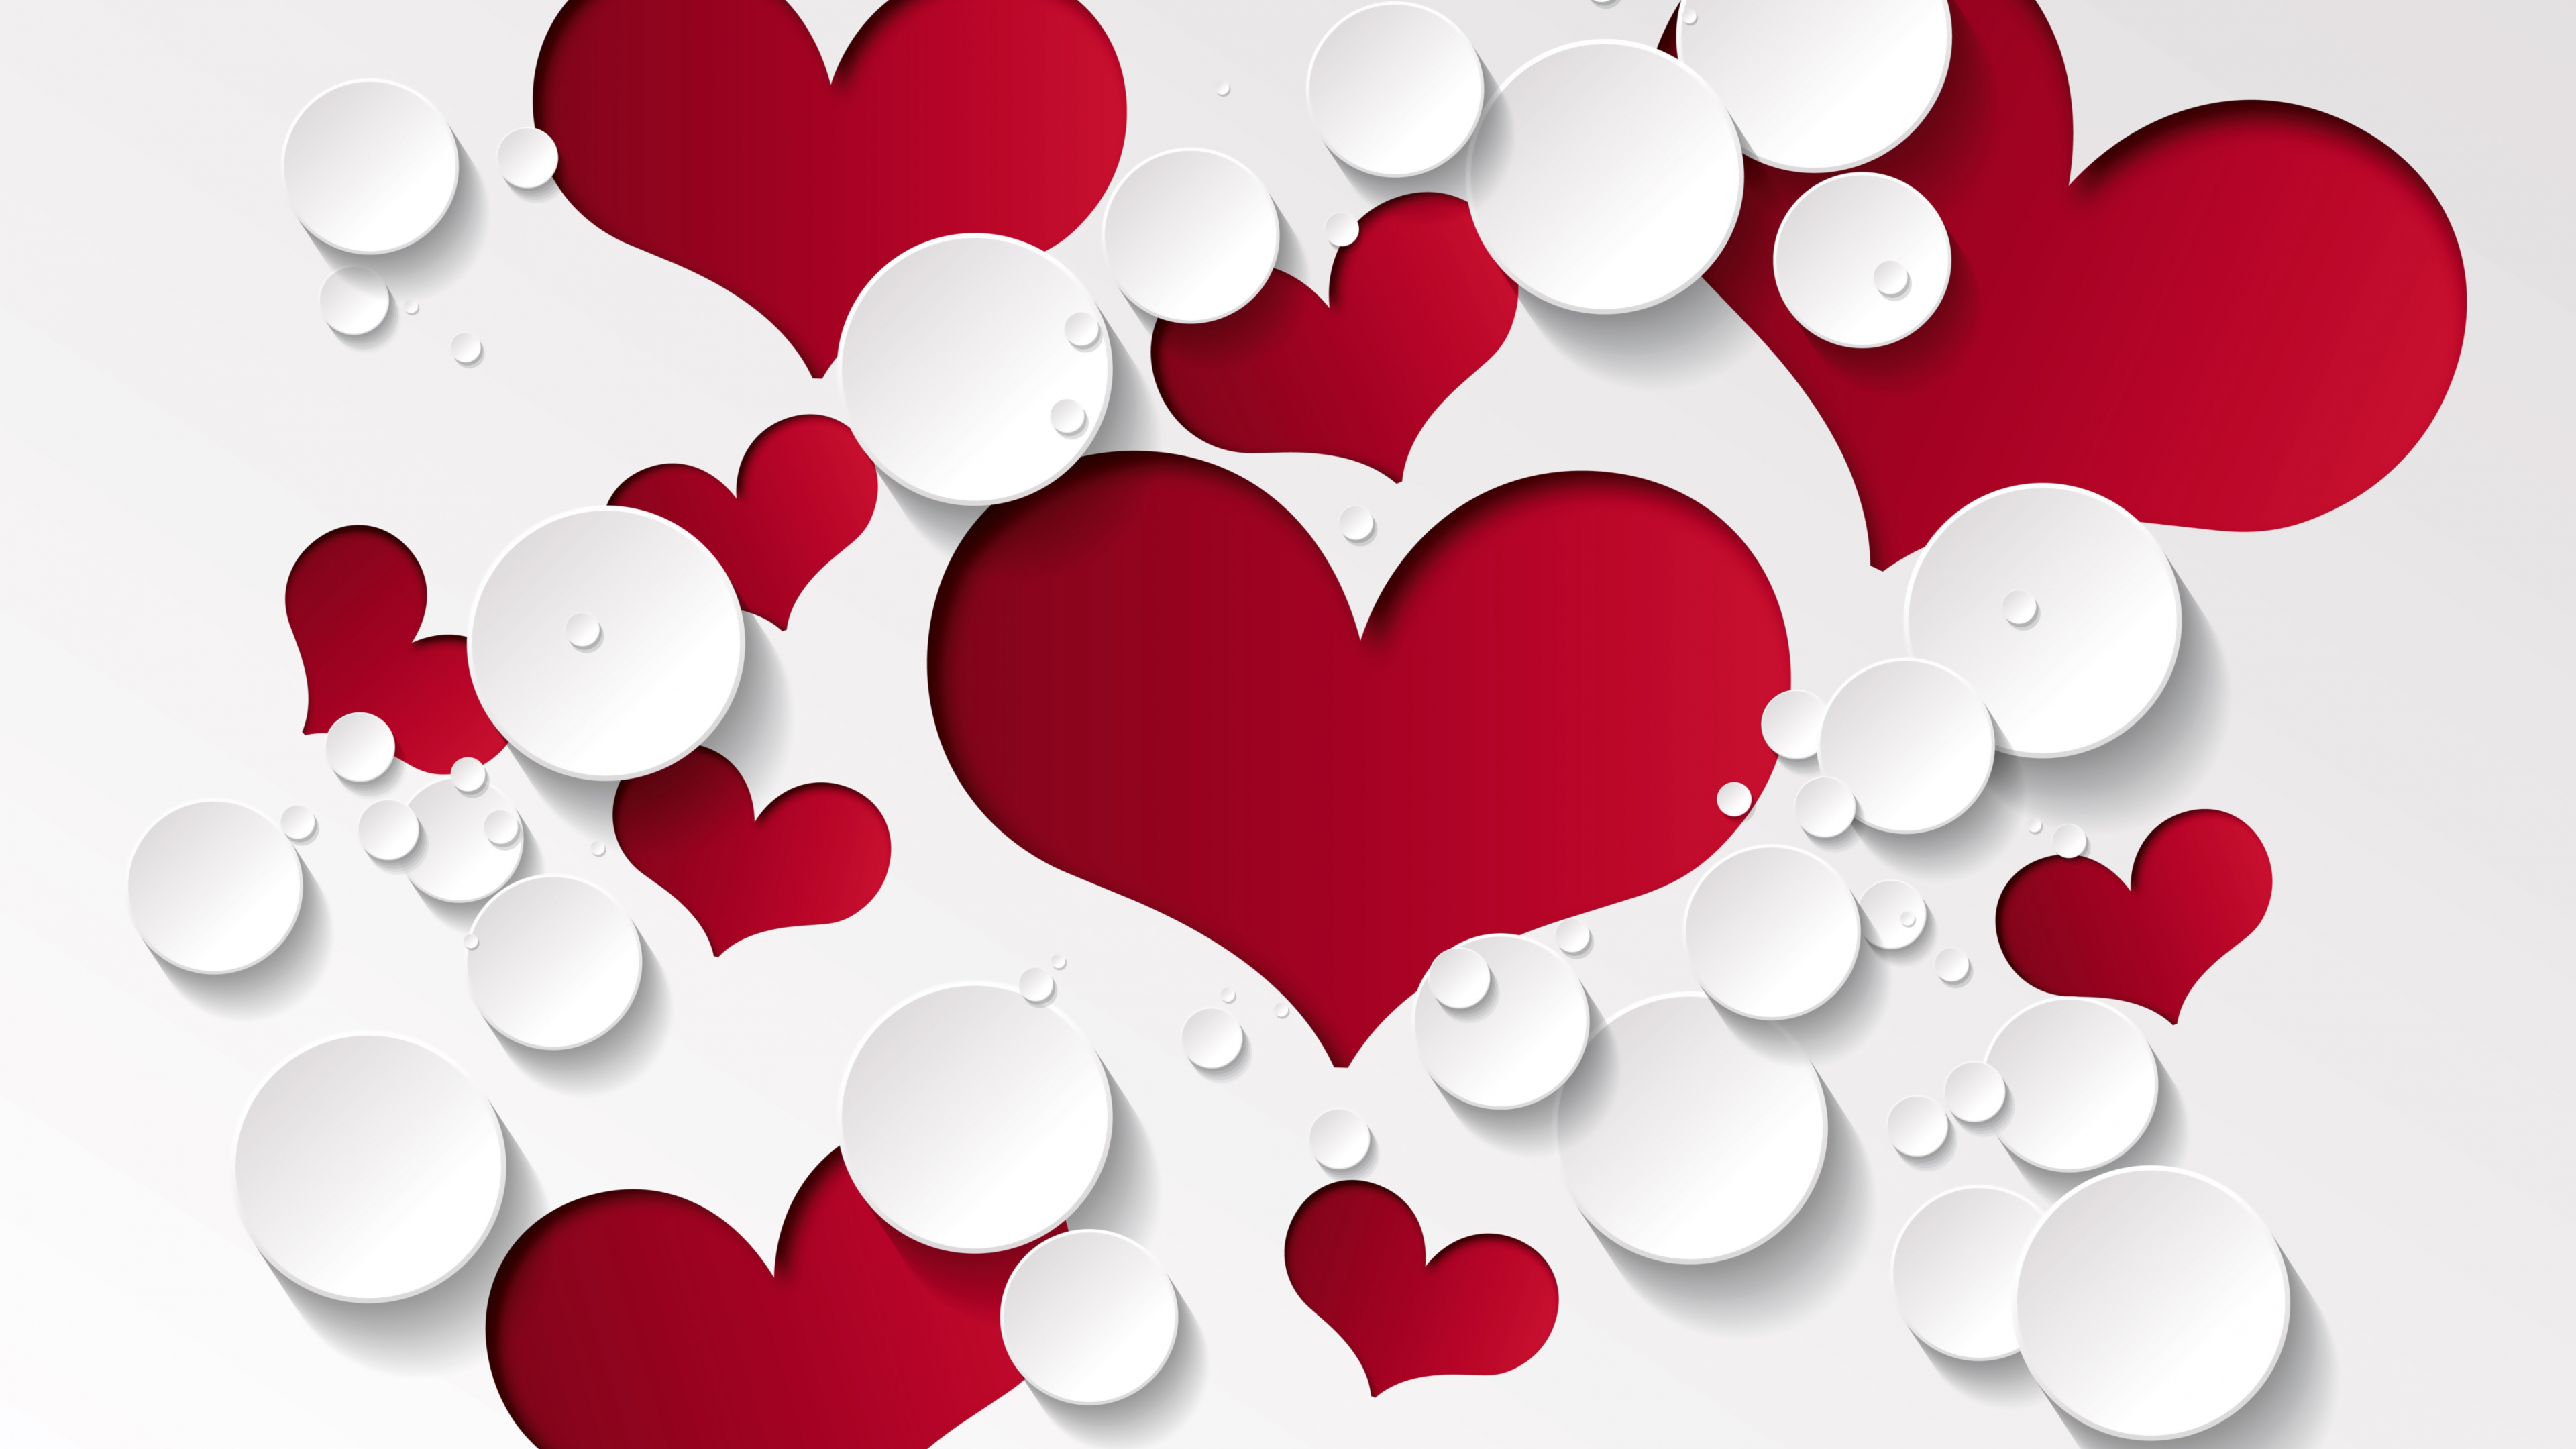 red and white love heart wallpaper hd #12874